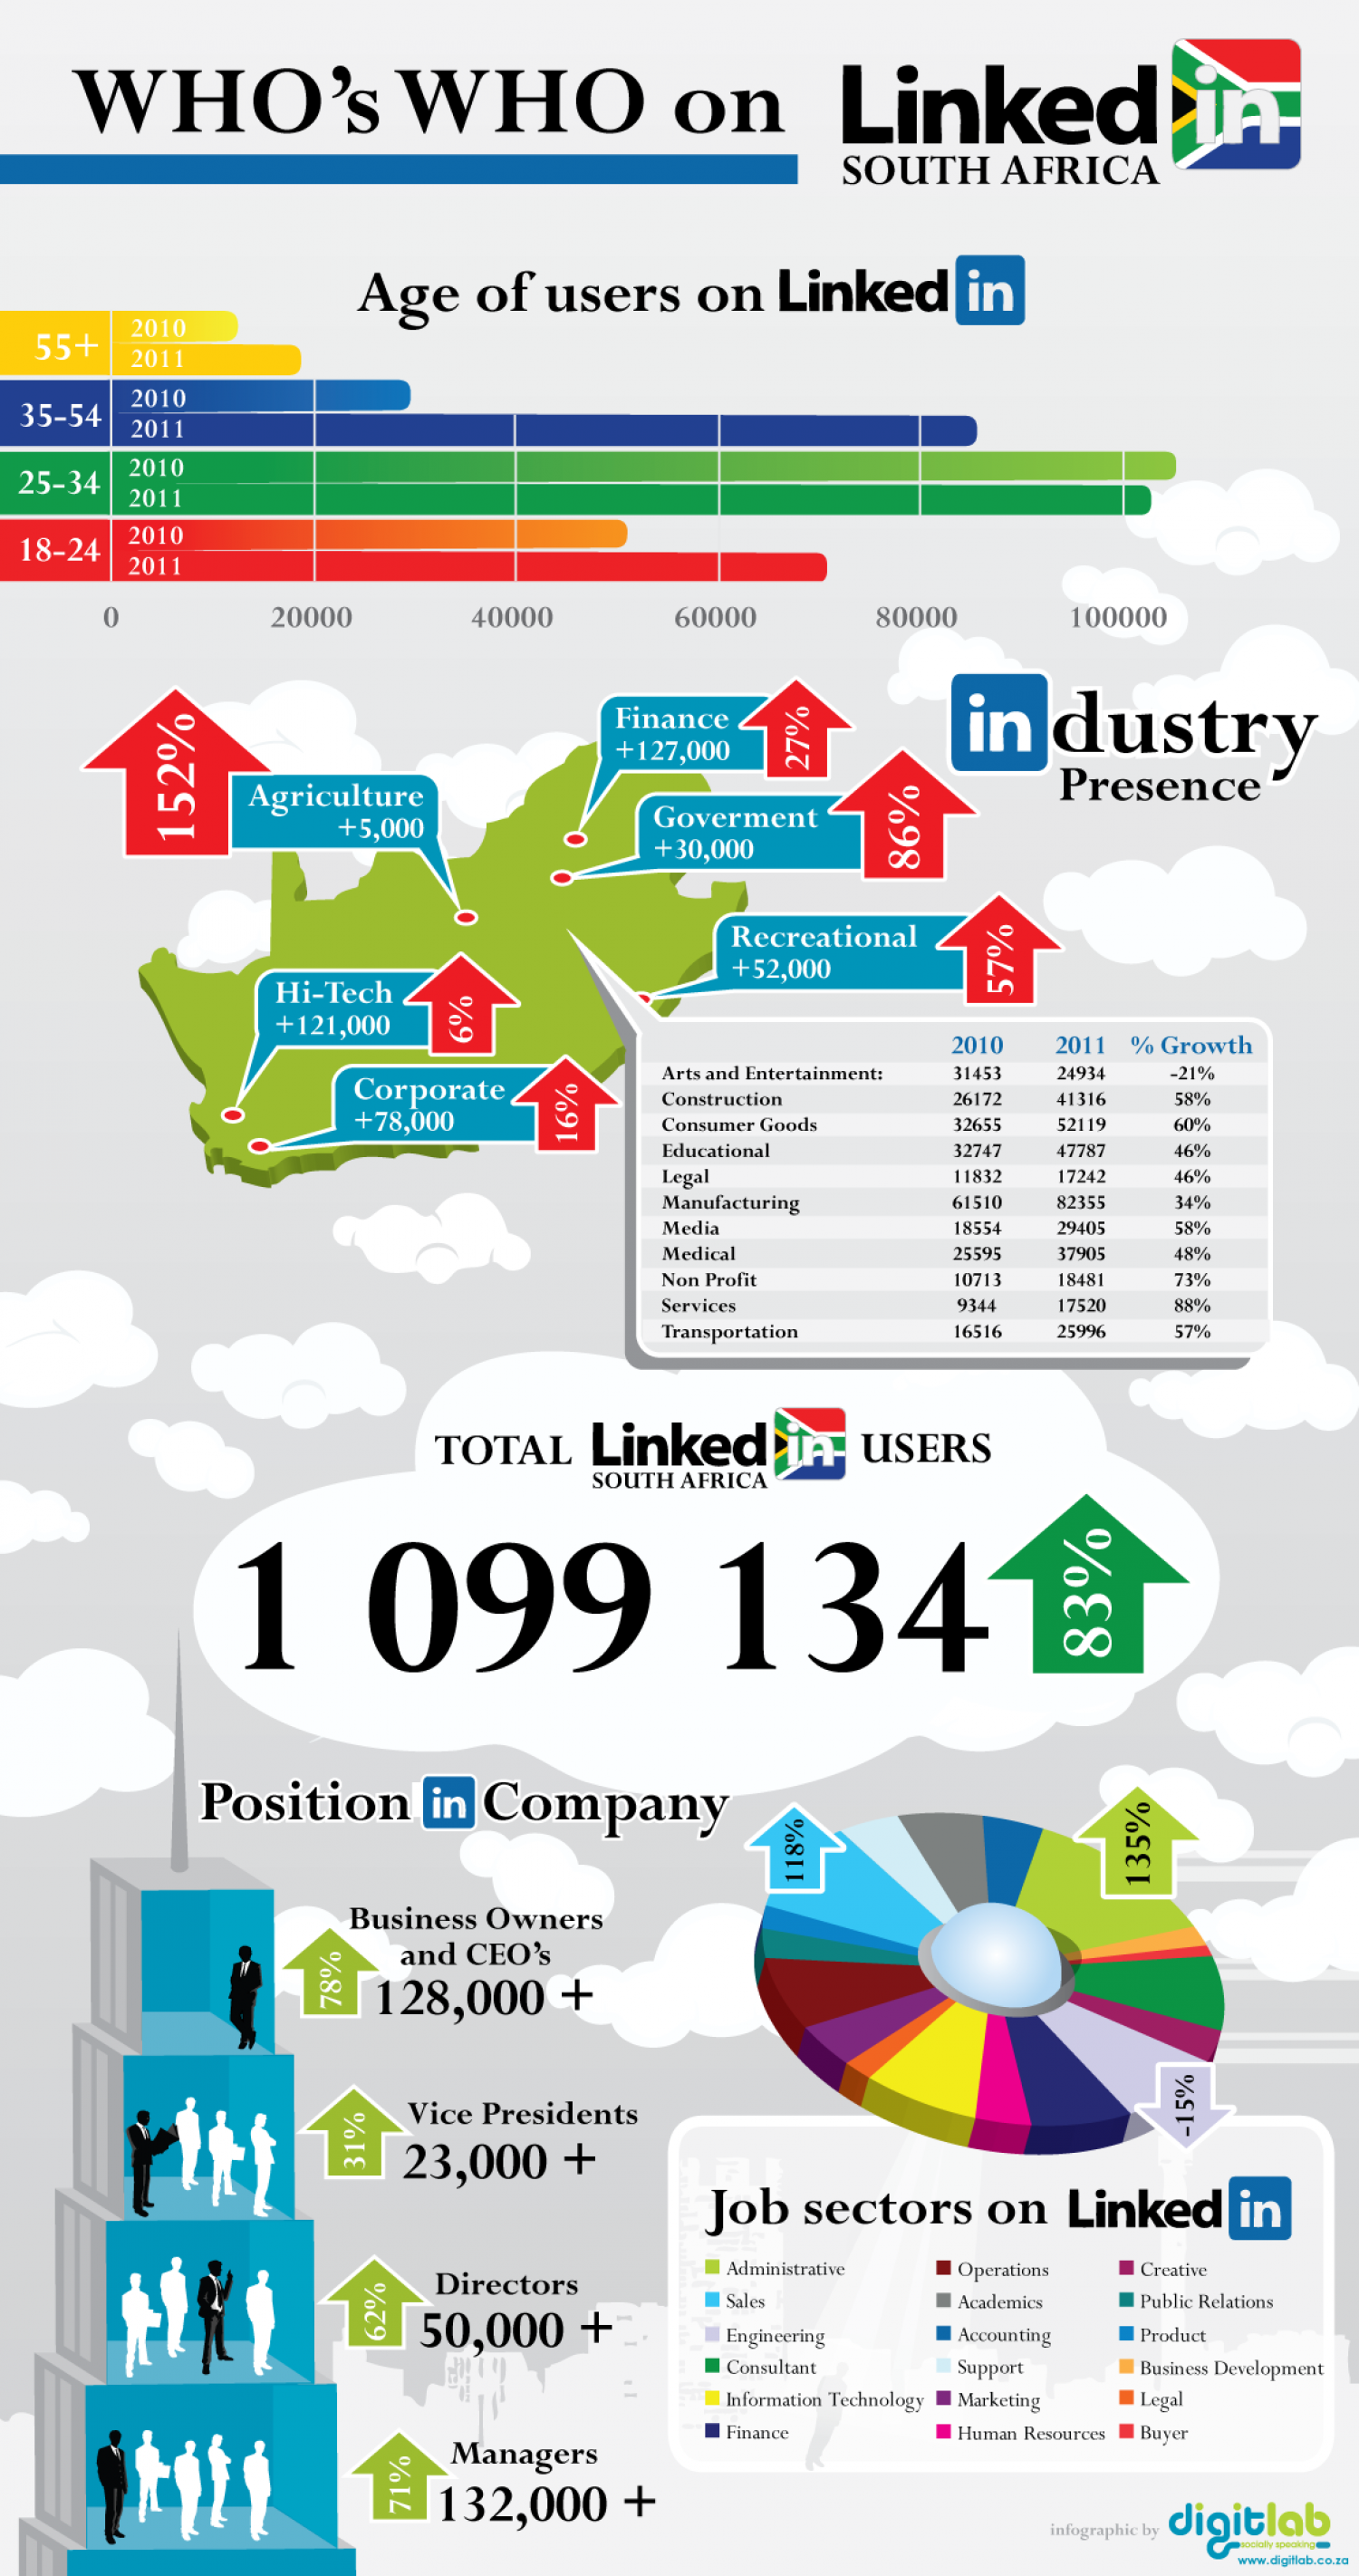 Who's Who on Linkedin in South Africa Infographic